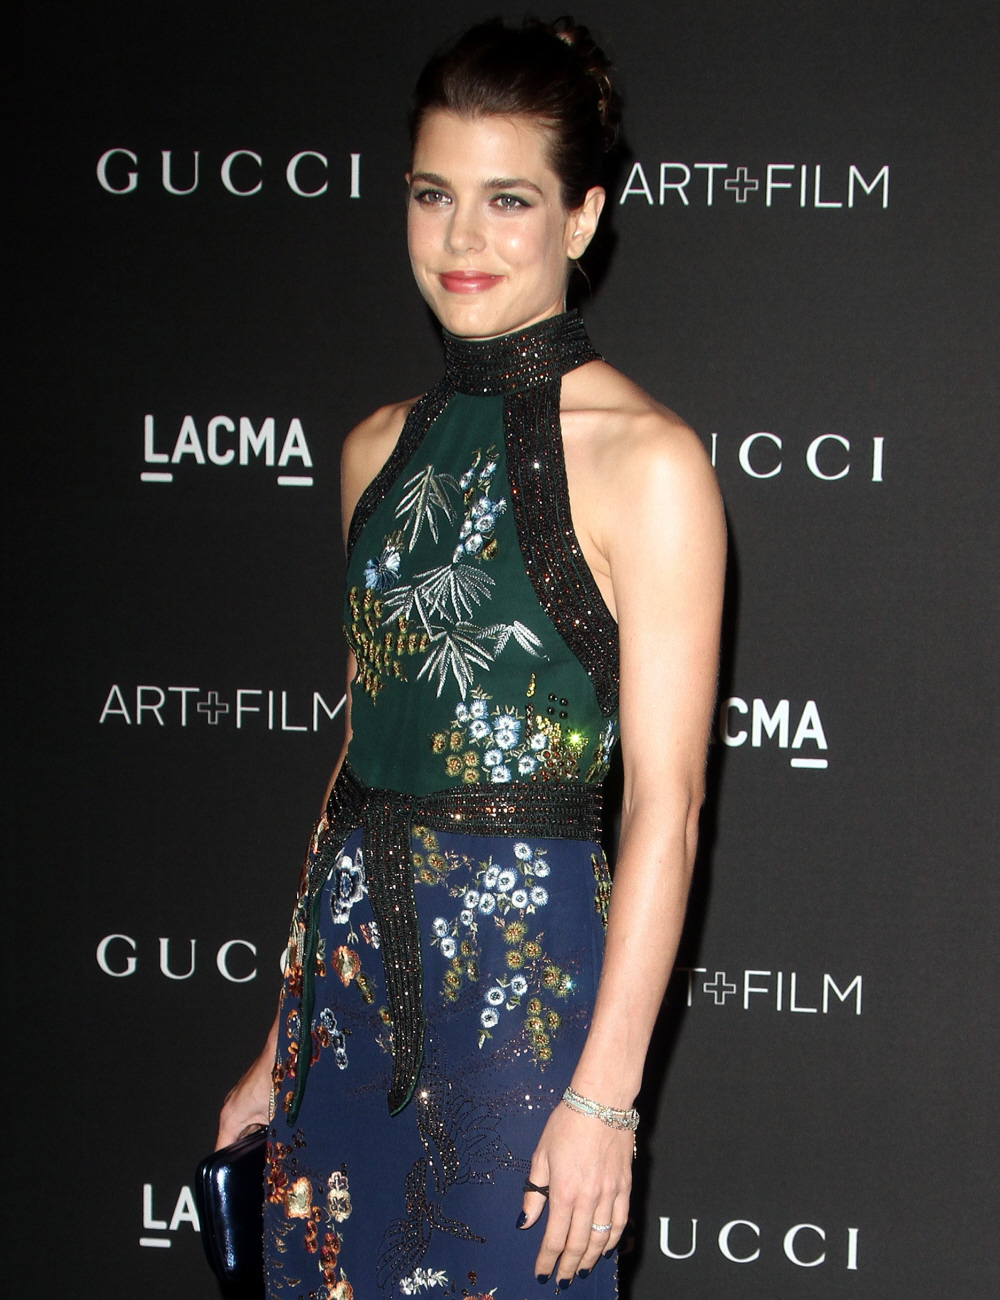 charlotte-casiraghi-gucci-2014-lacma-art-film-gala/